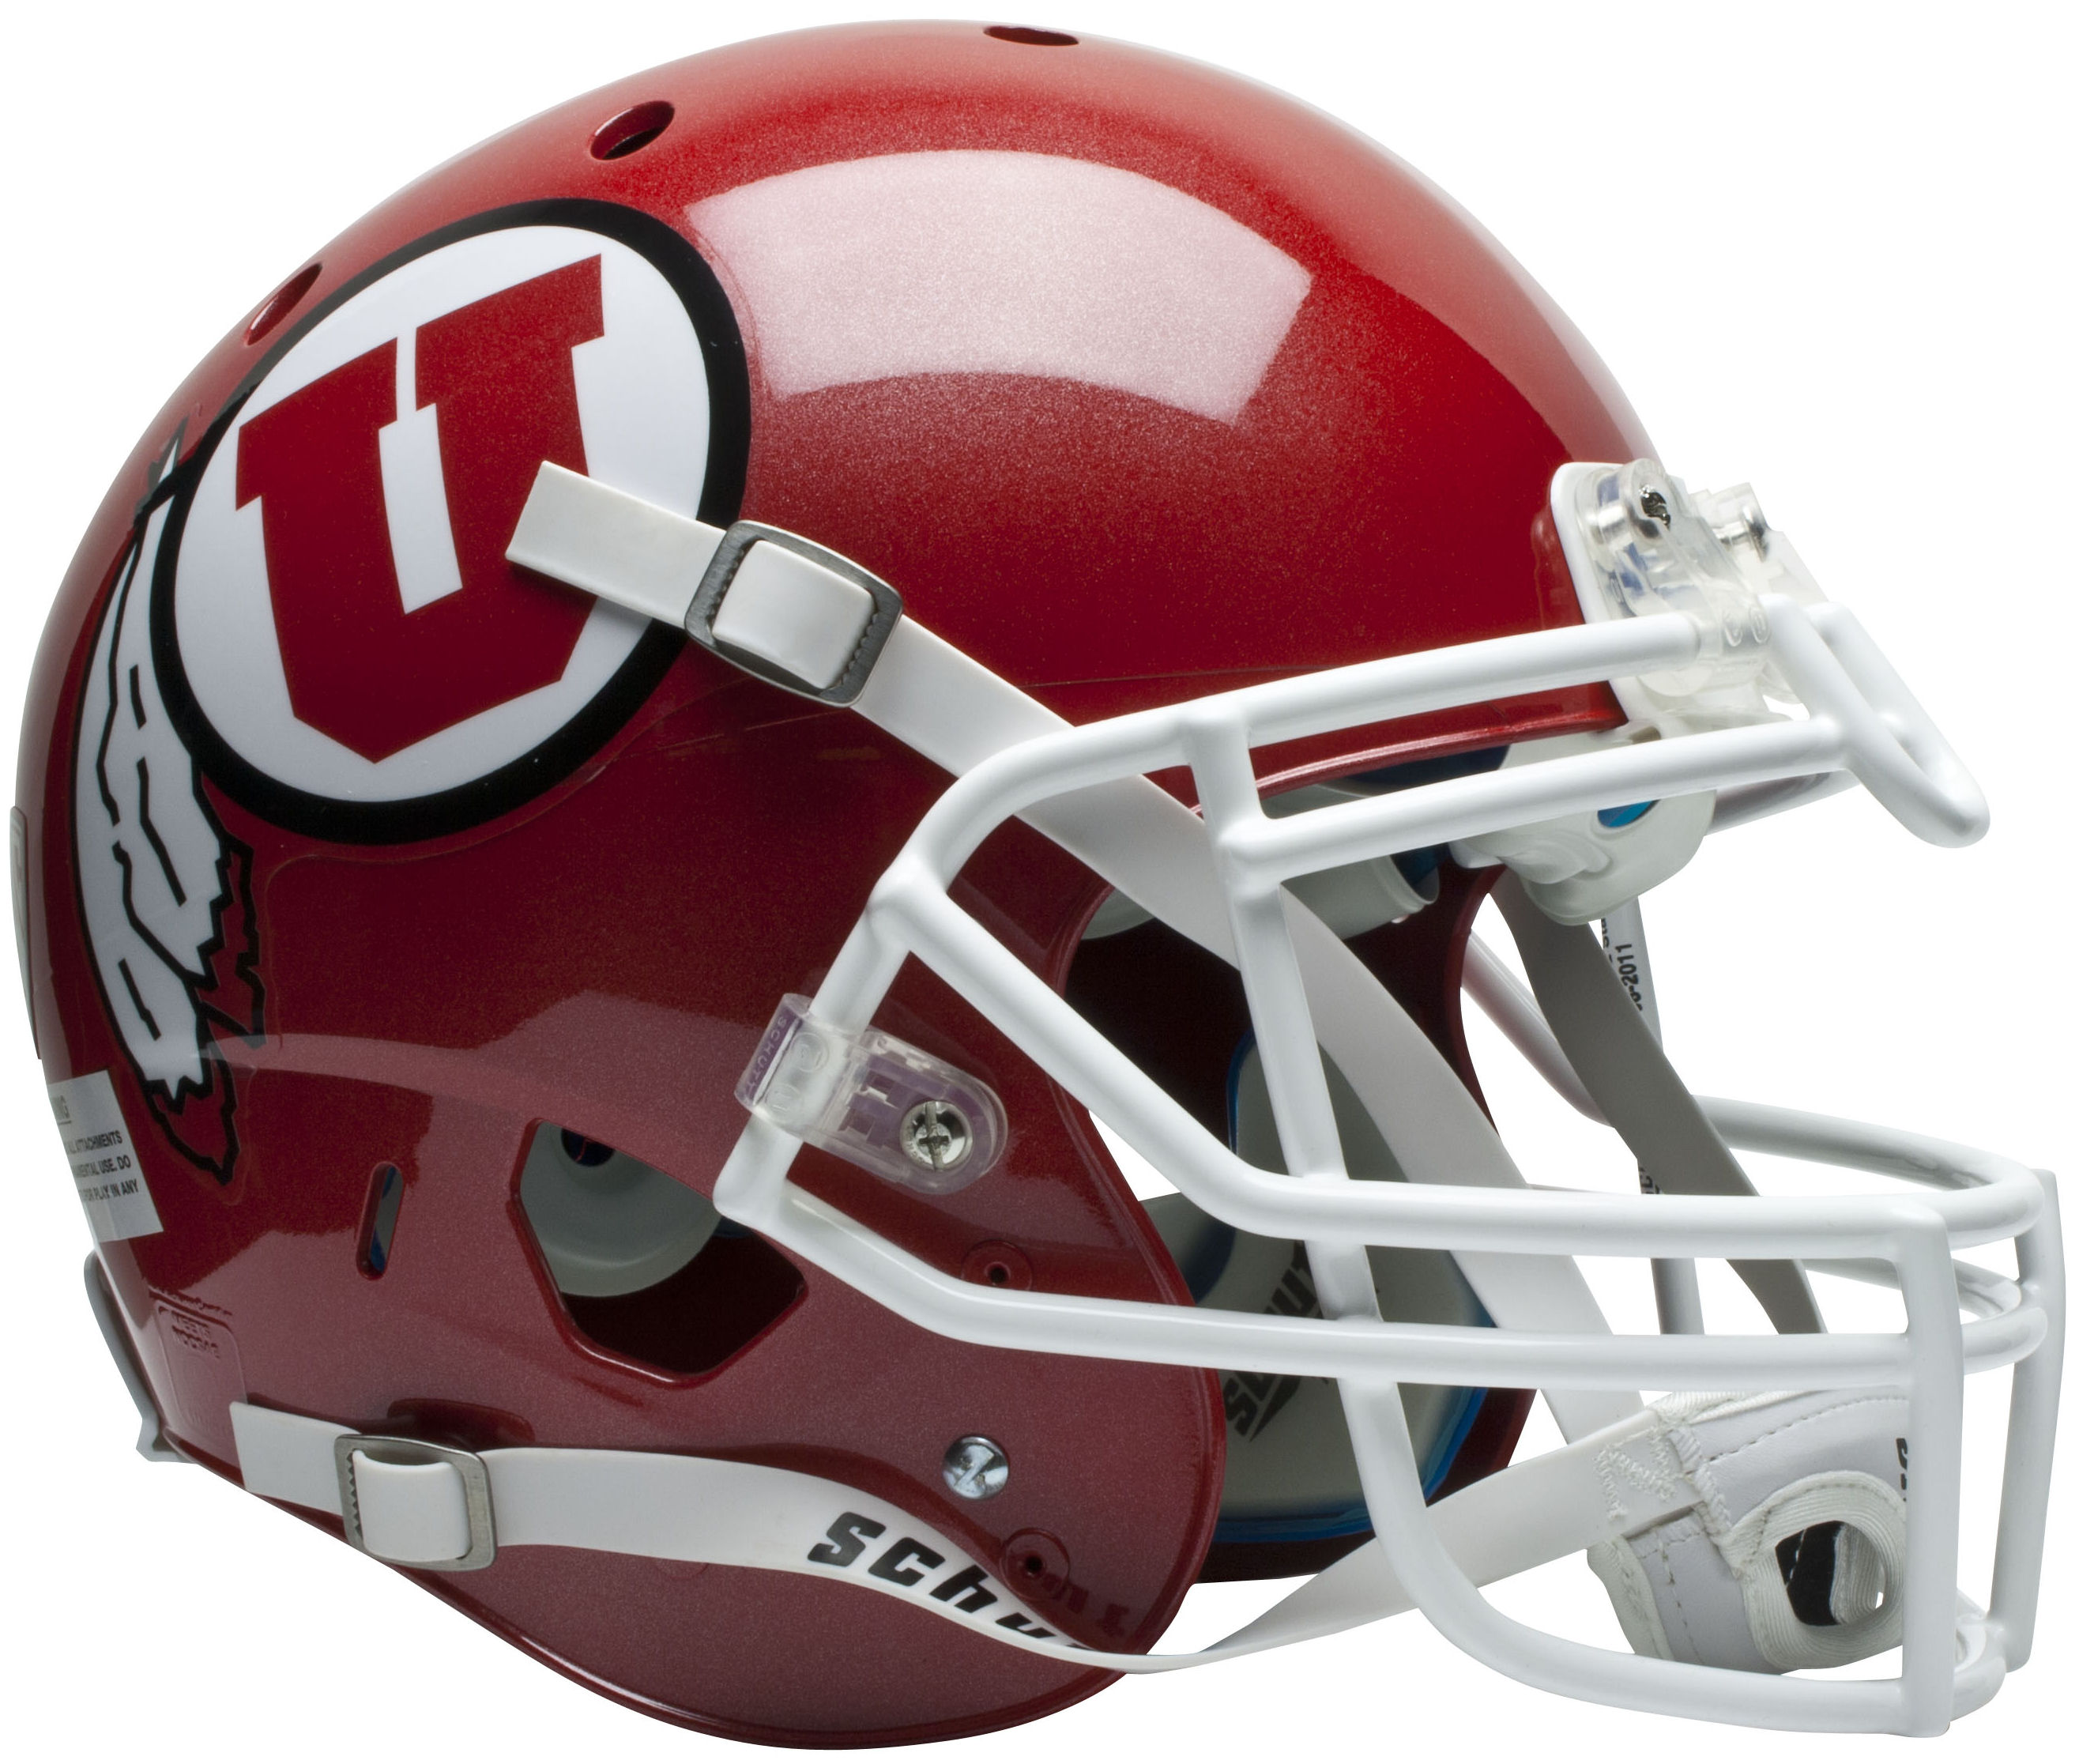 Utah Utes Authentic College XP Football Helmet Schutt